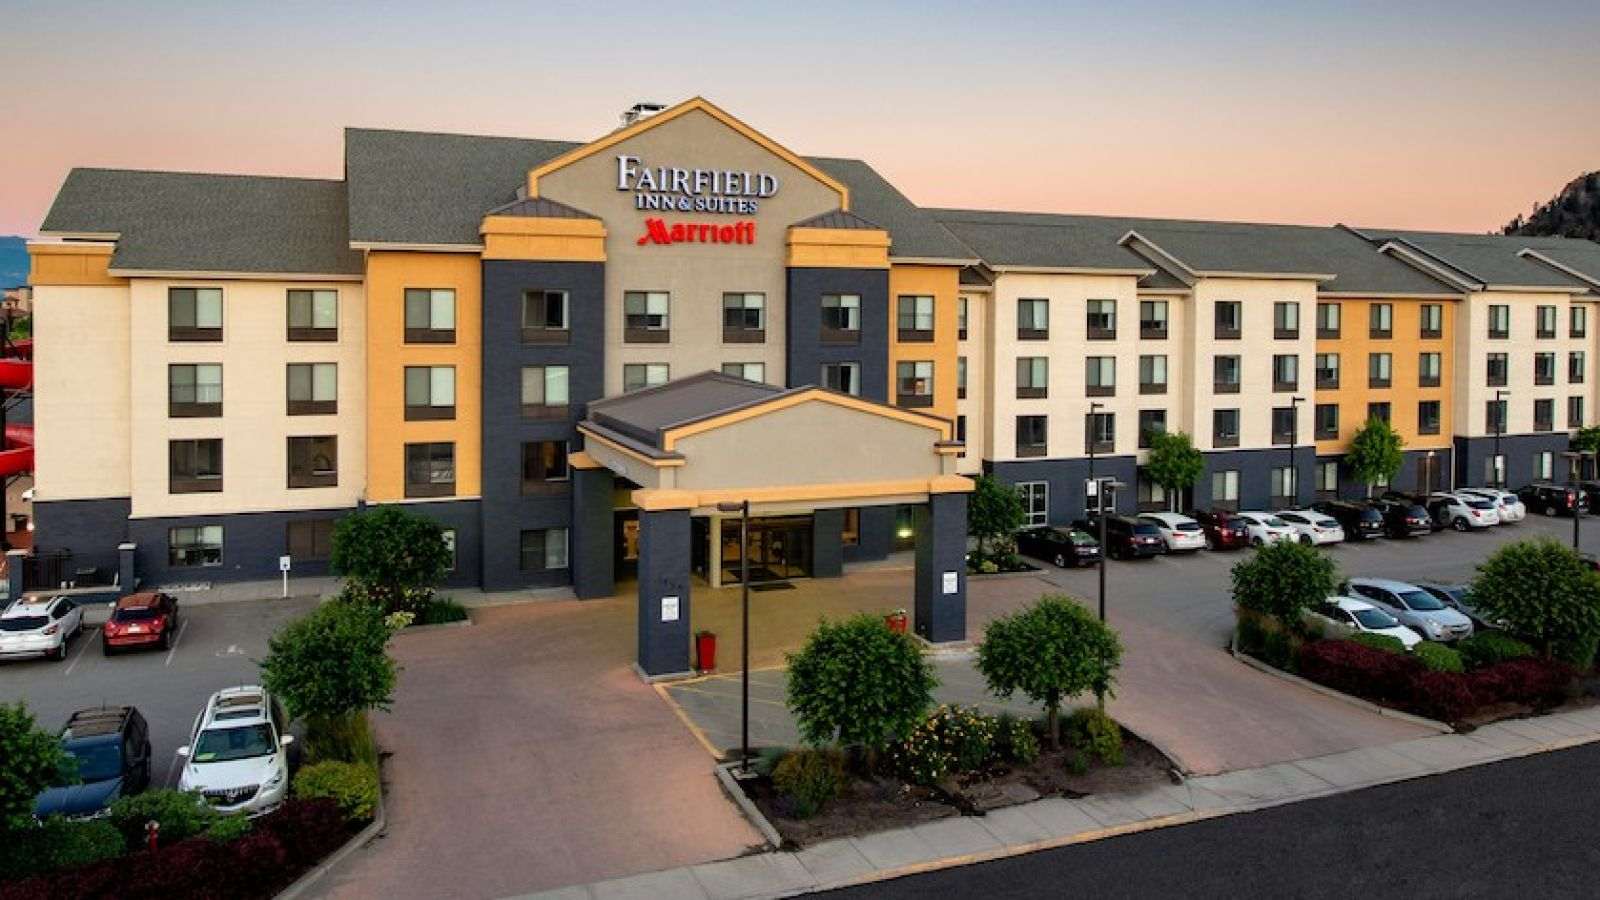 Our hotel in Kelowna has been completely renovated to provide you with the most comfortable and enjoyable stay.